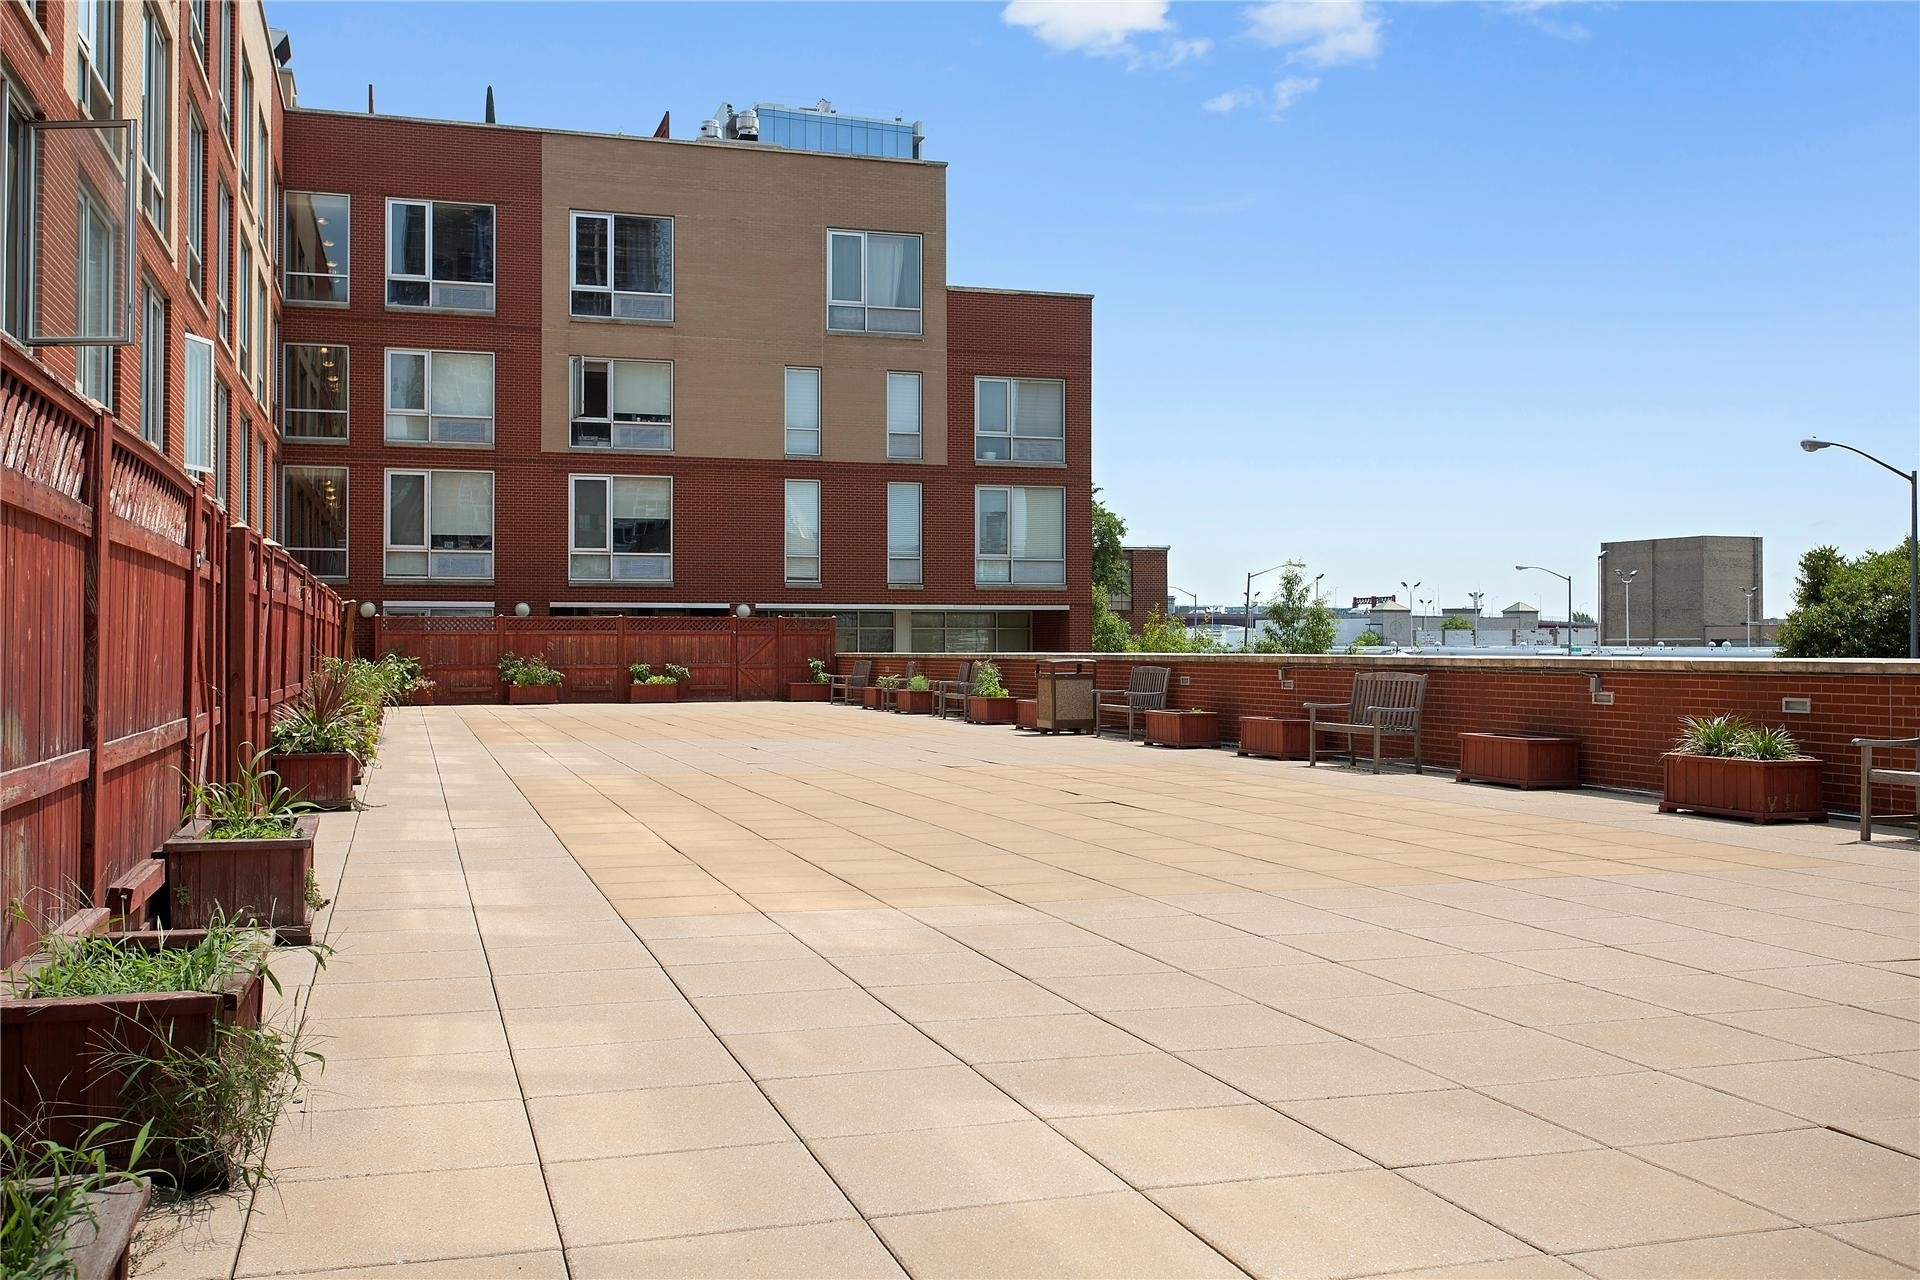 4. 建於2-40 51st Avenue, Hunters Point, Queens, NY